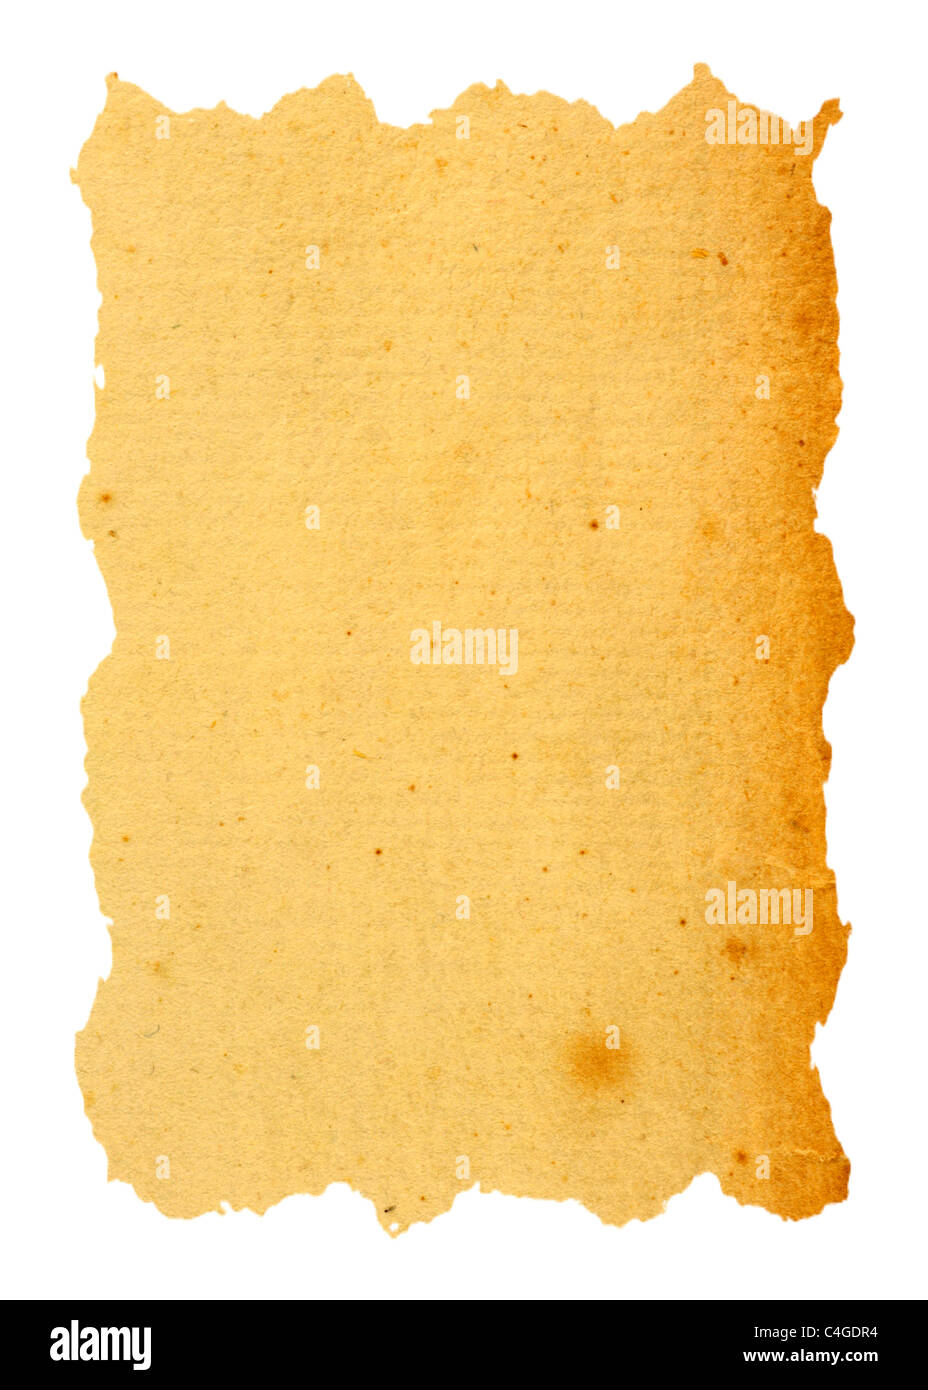 Vintage paper isolated in white - Stock Image